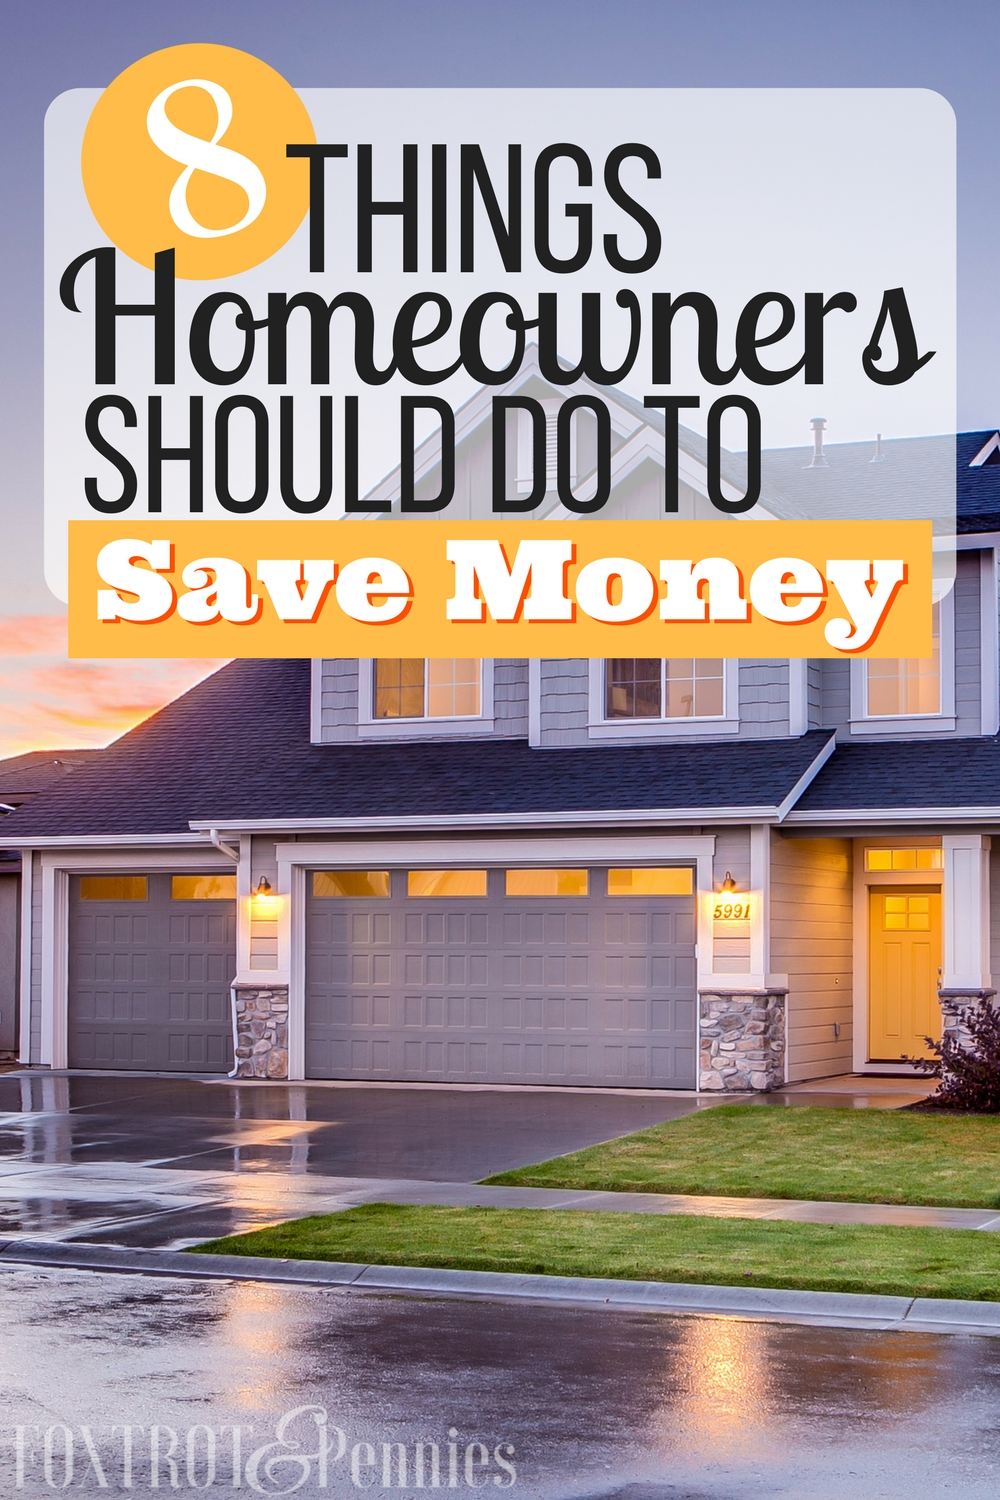 If you are homeowner, you definitely need to read this! 8 things ANY homeowner can do to save money! Click to read more..